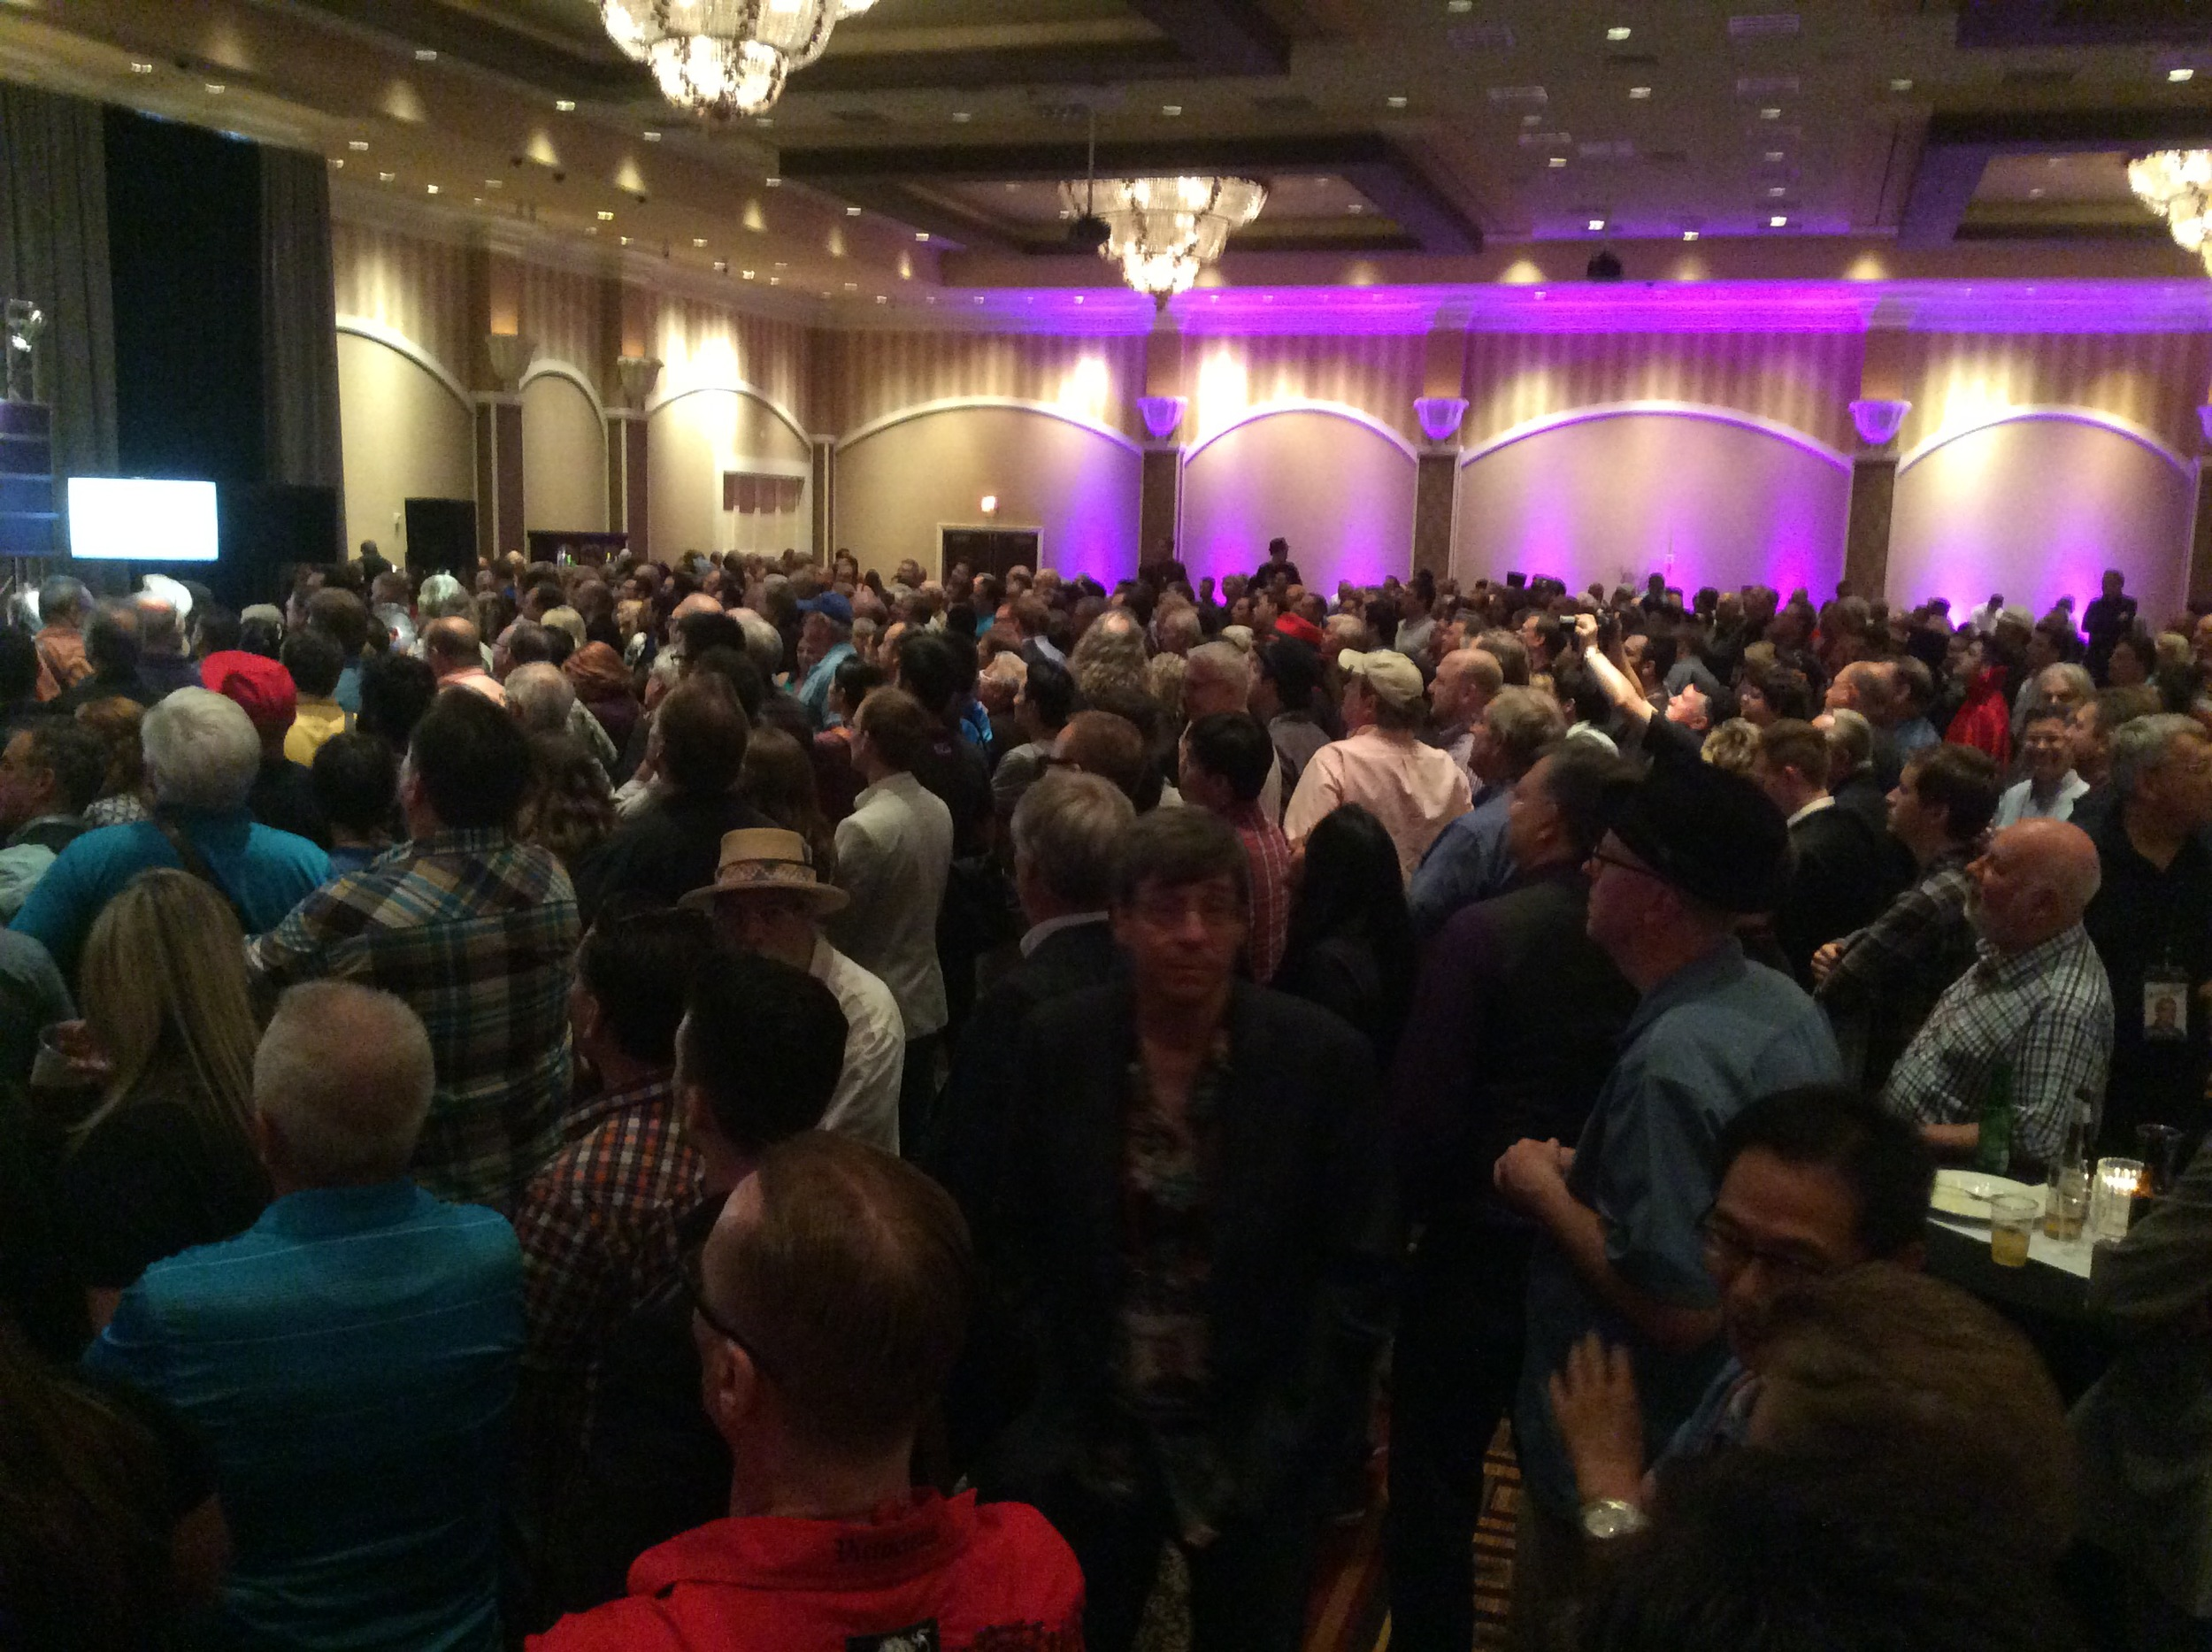 1,600 registrants easily squeezed into the ballroom for dinner and to say farewell to each other.